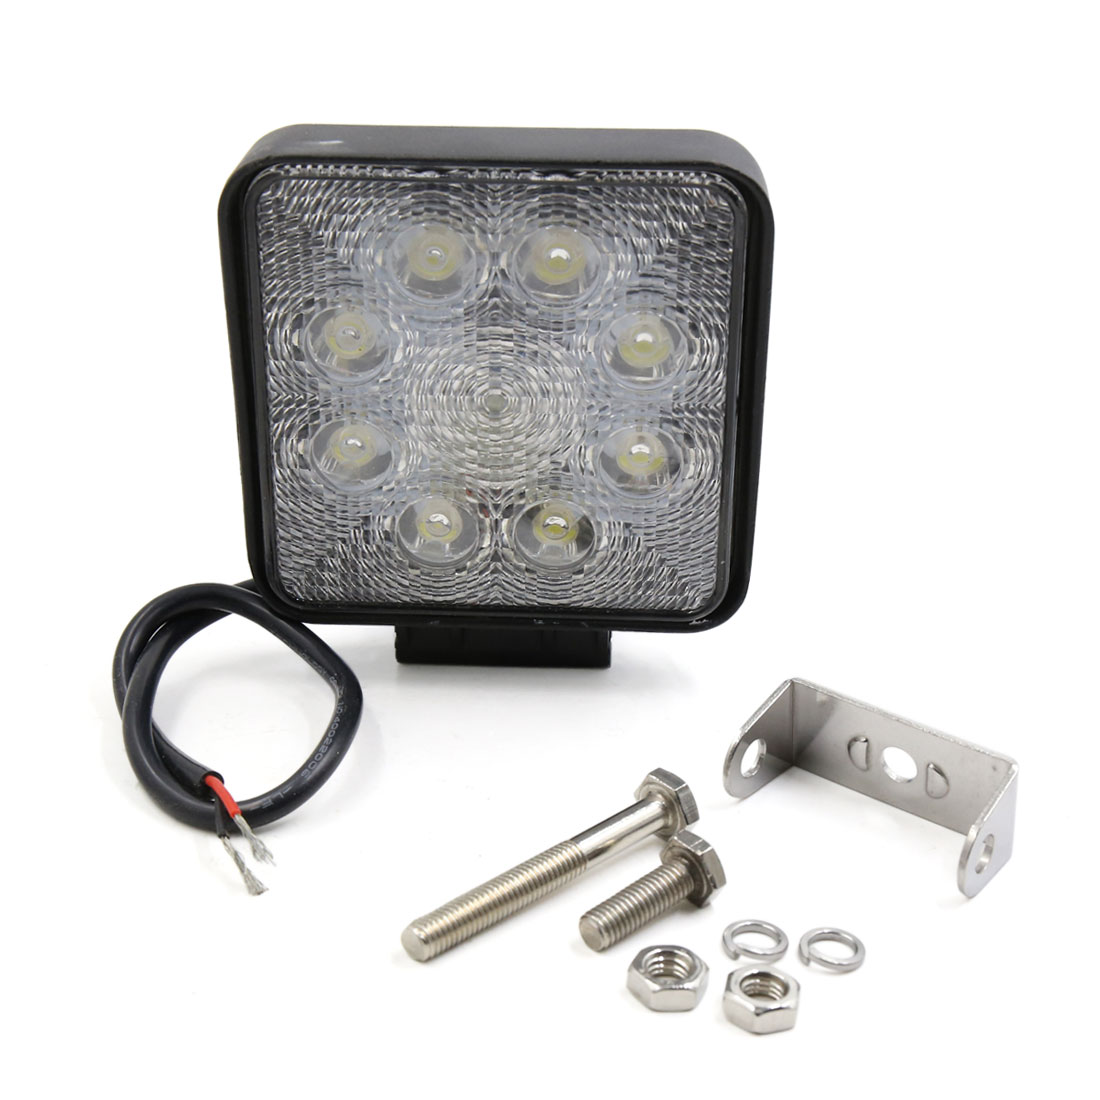 "4"" 24W 6000K Spot Beam 8 White LED Square Work Light Fog Driving Lamp for Offroad SUV ATV Jeep Boat"